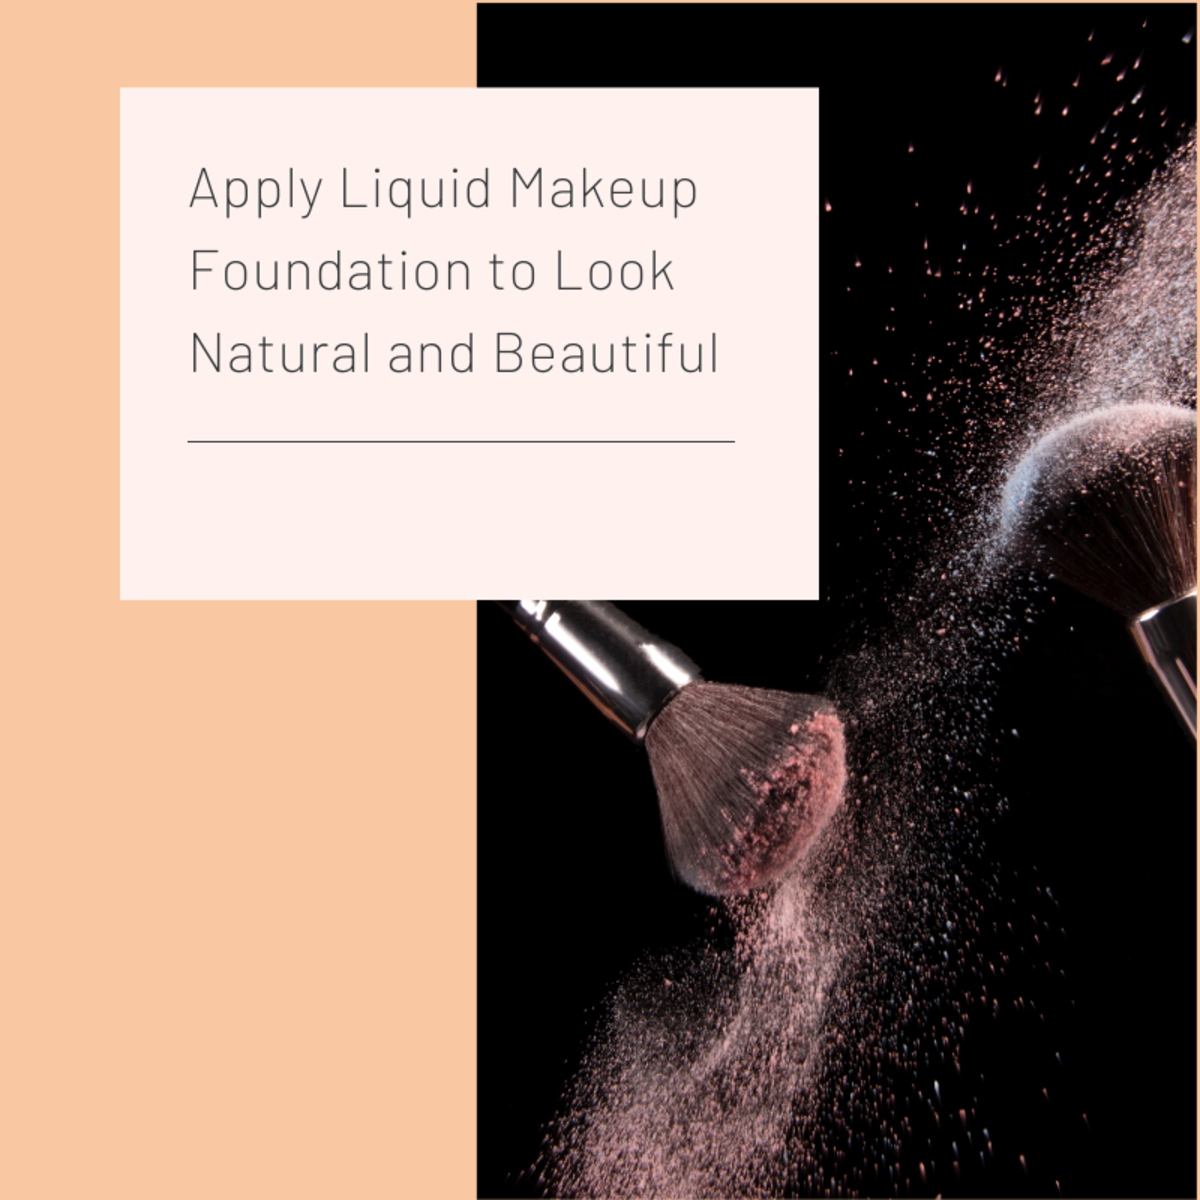 Read on to learn how to apply makeup to look natural and beautiful.